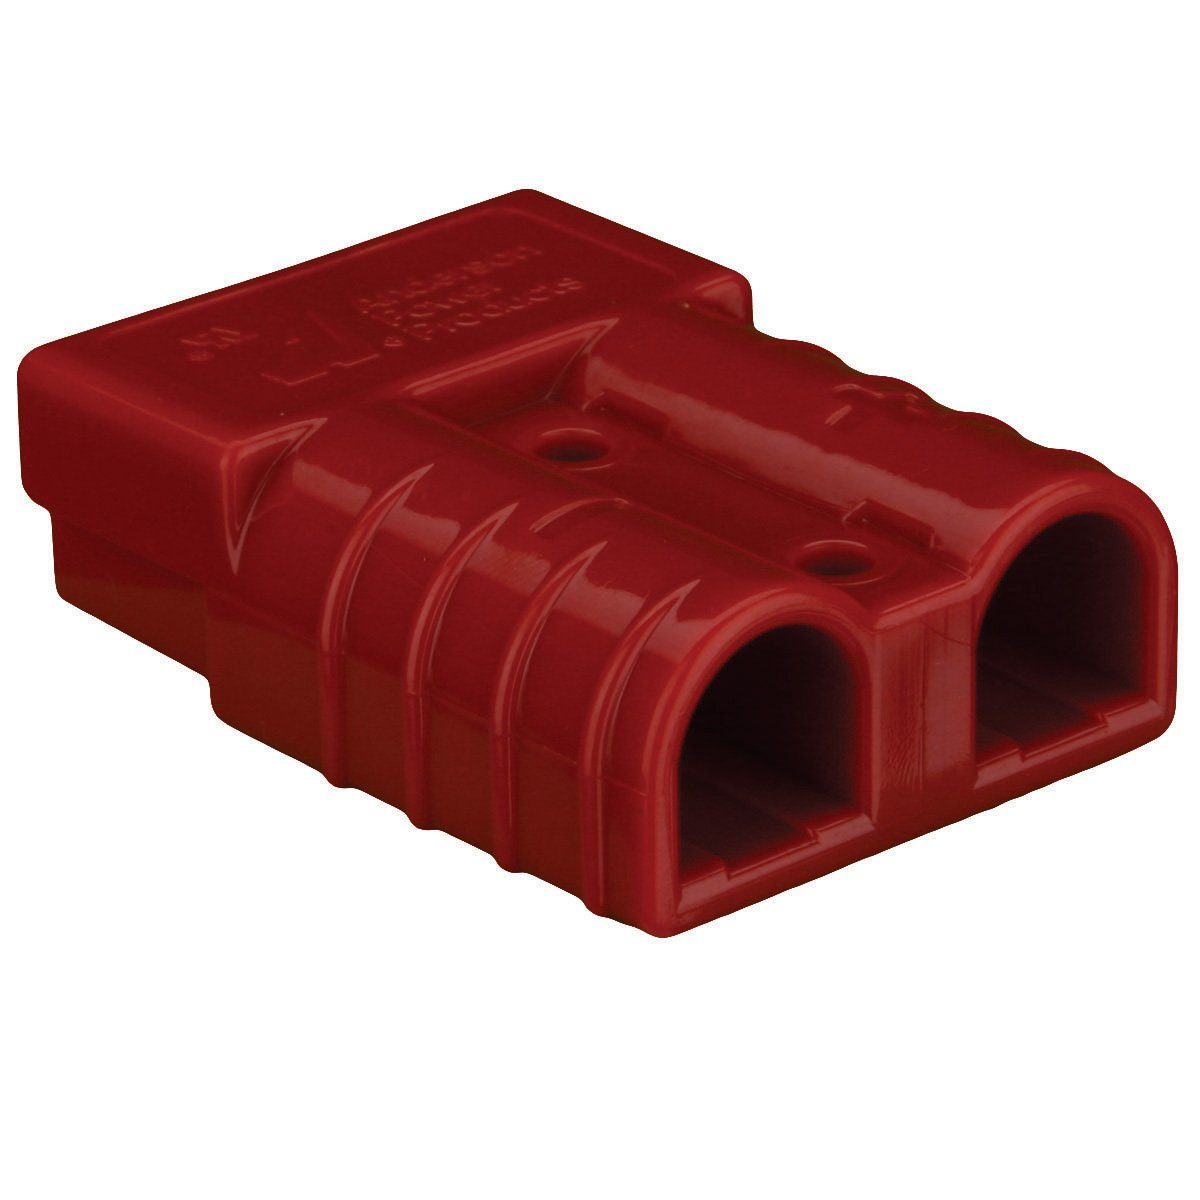 Install Bay SB50 Large Gauge Anderson Connectors 8 Gauge Red, Each Metra Electronics Corporation